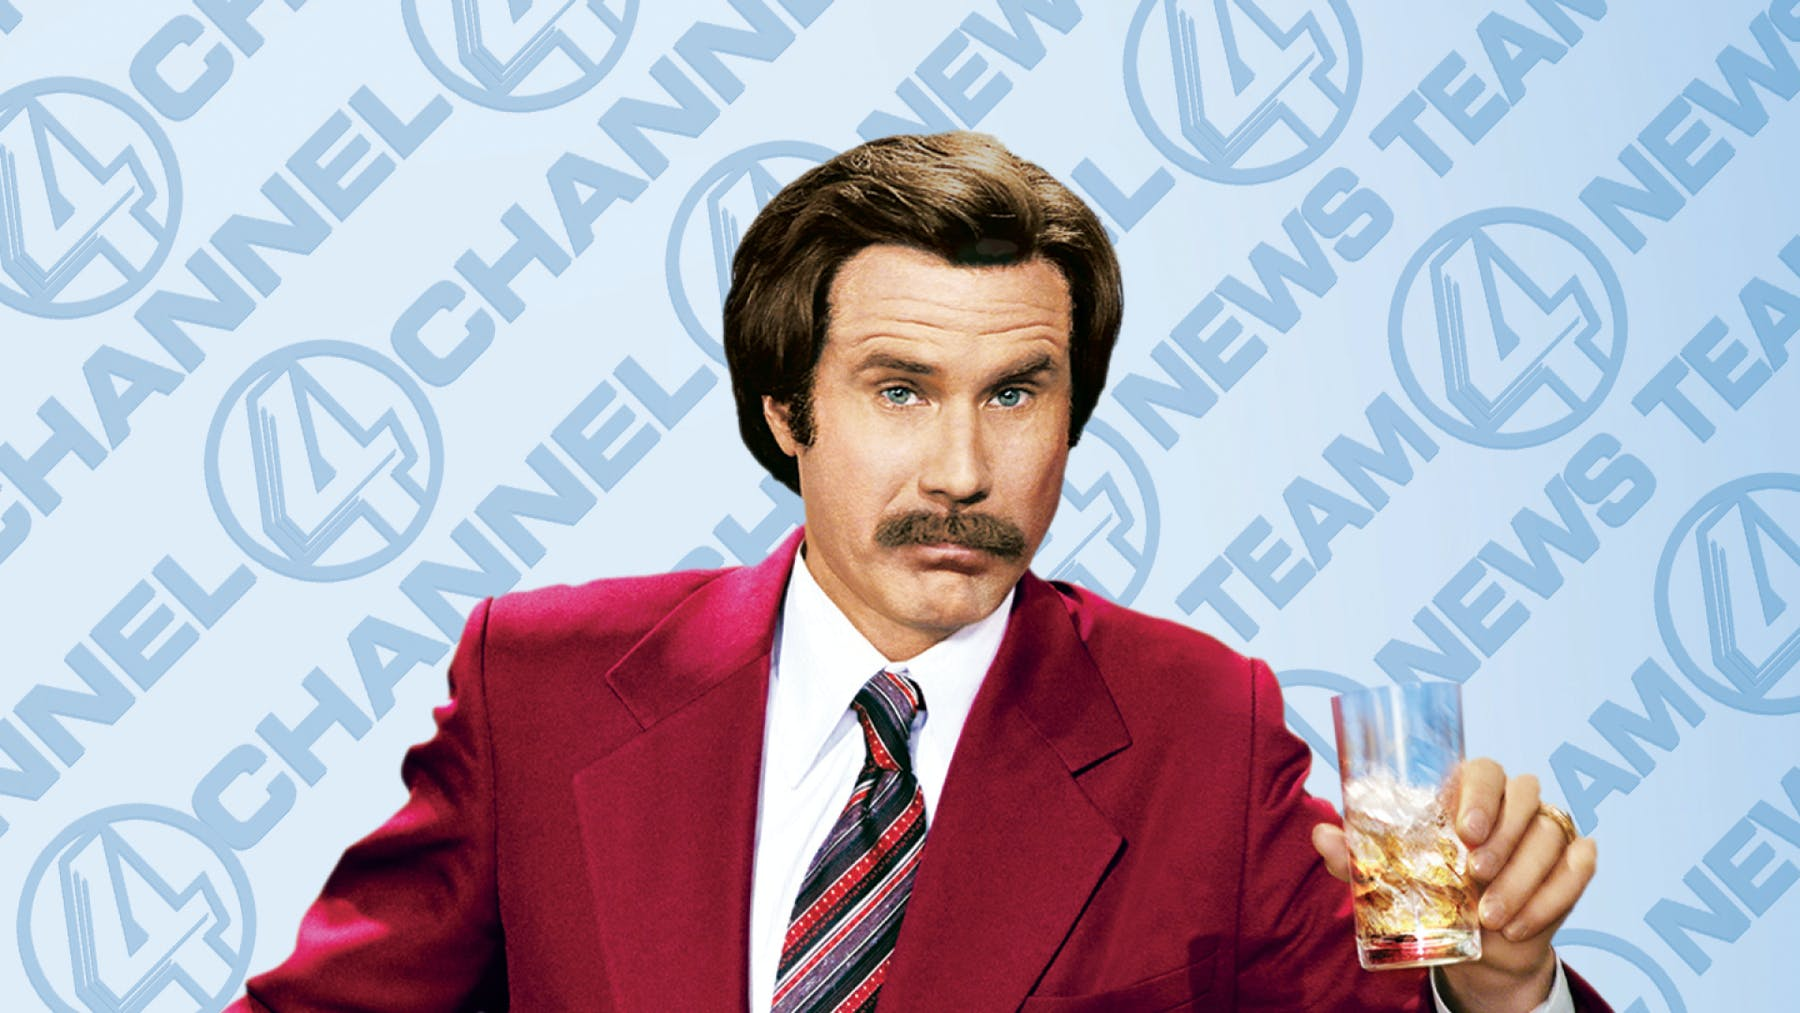 Will Ferrell wearing a suit and tie